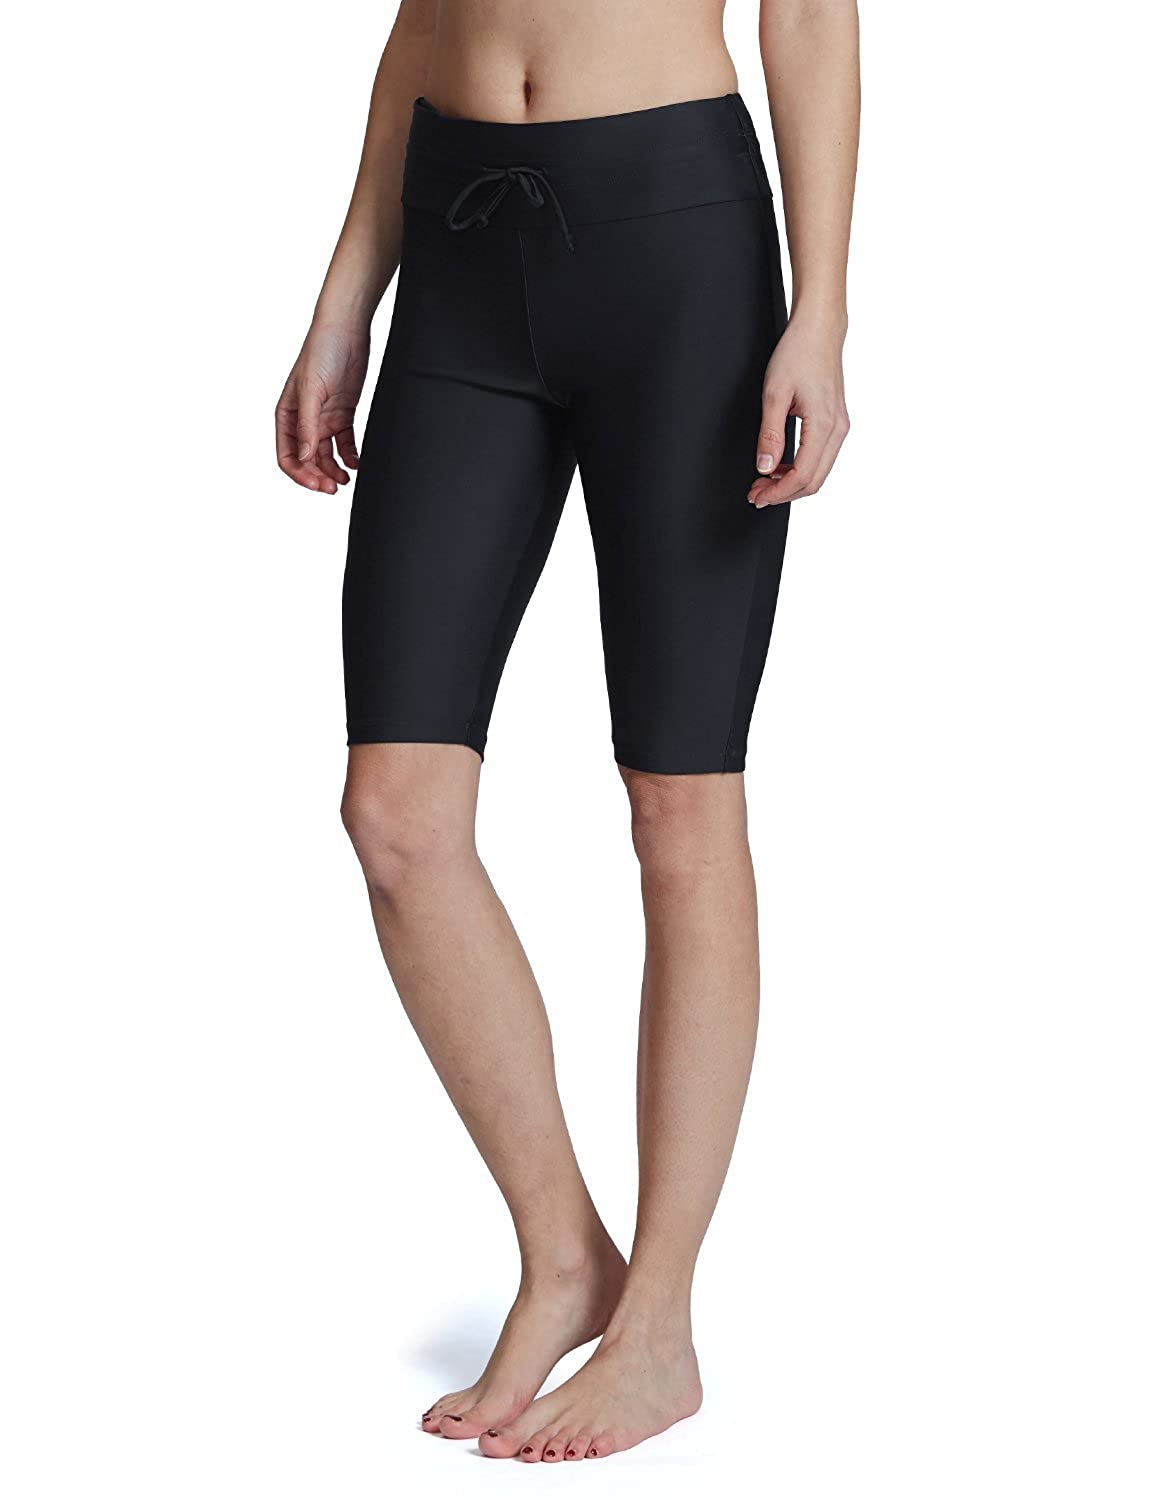 640fc17a29 UPF 50+ sun protection; Breathable, stretch and quick-dry swimming fabric.  Built-in panty liner added comfort. Wide waistband with adjustable  drawstring ...